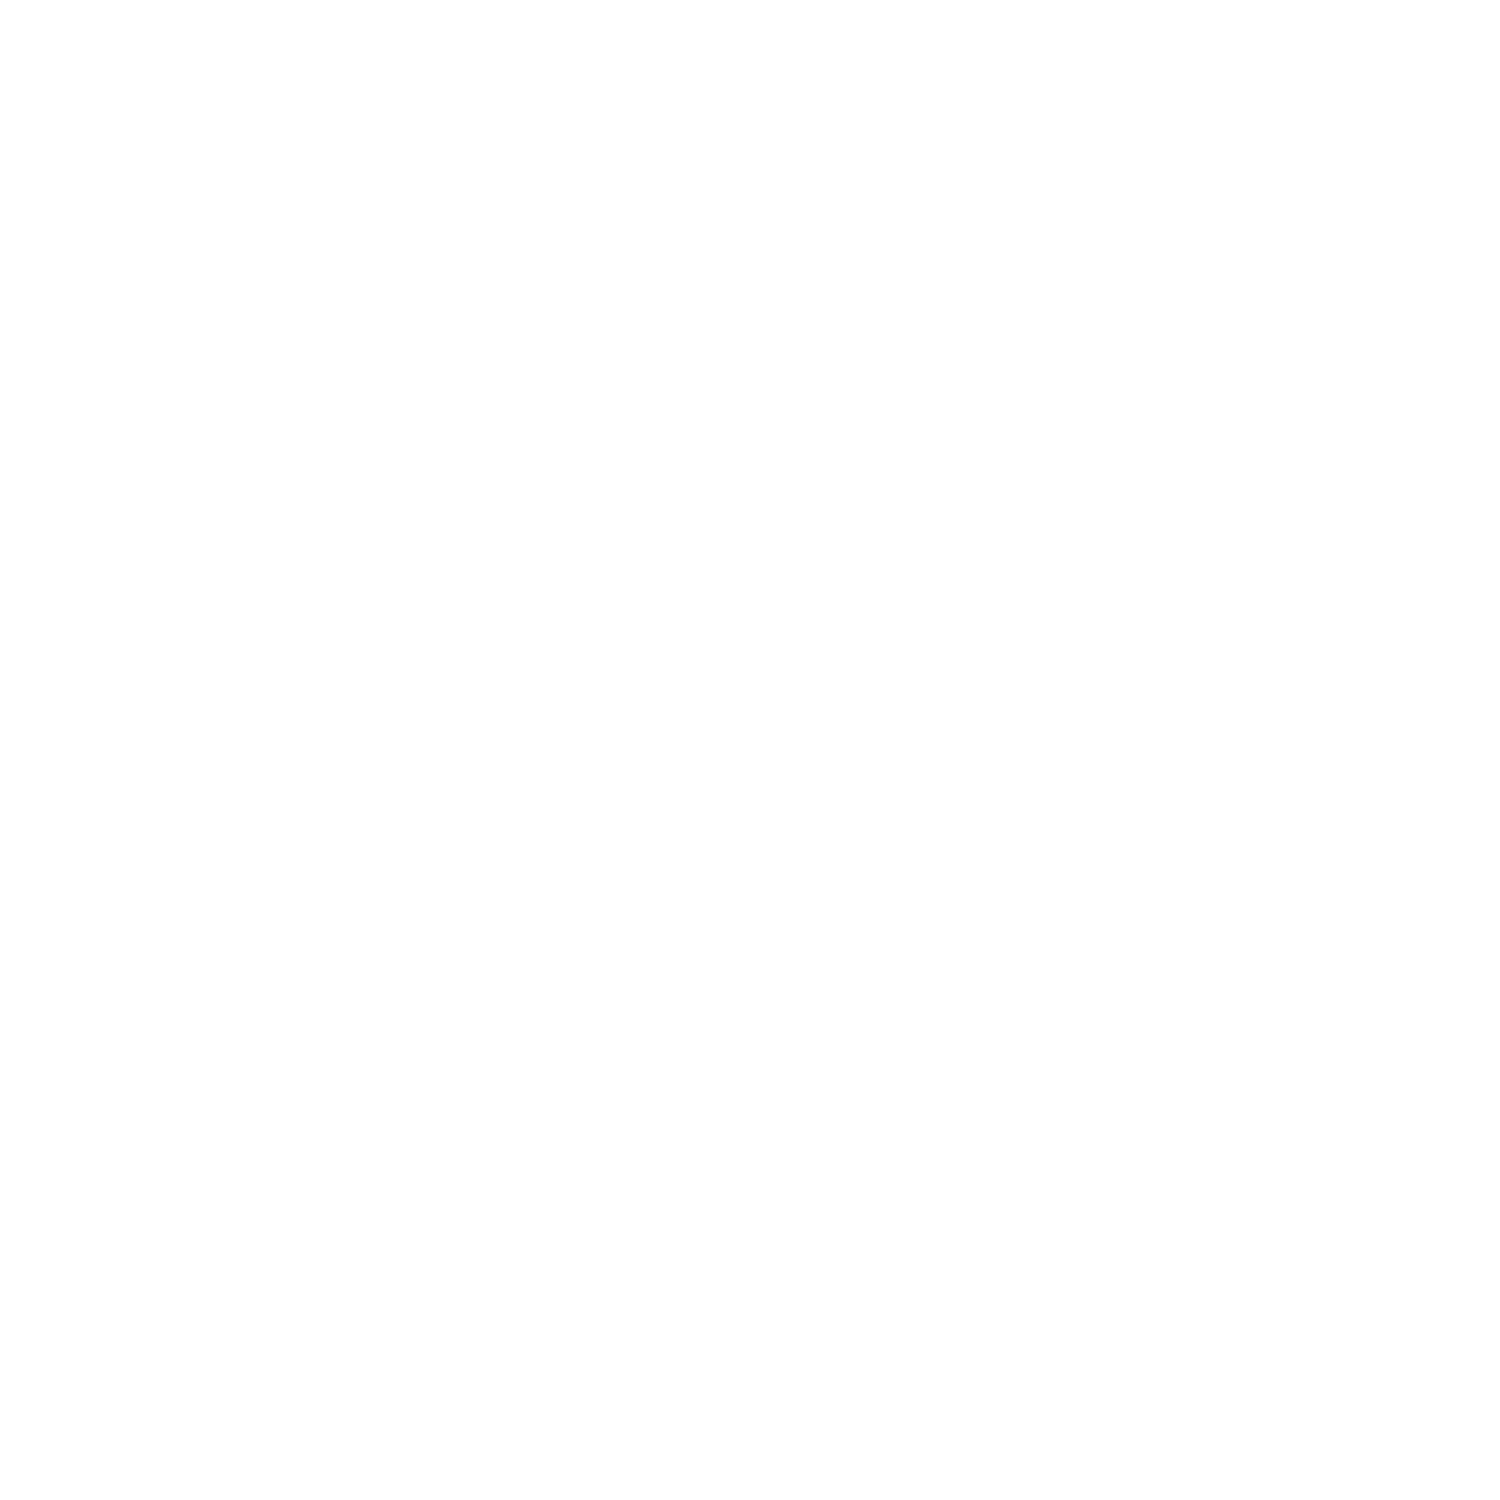 The Justis Department